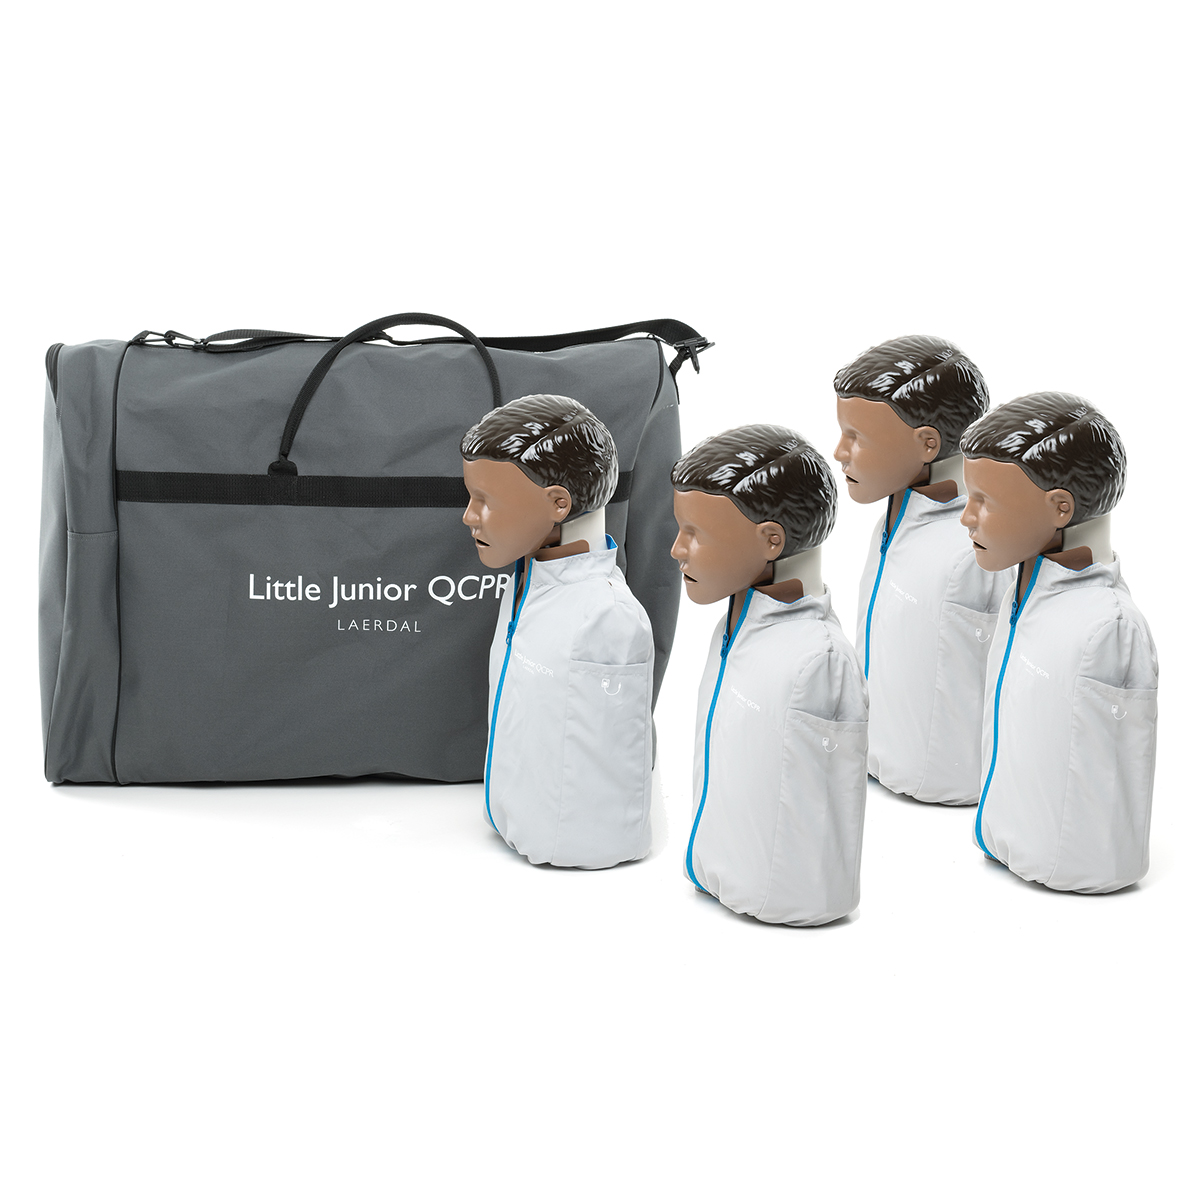 Pack of 4 Laerdal Little Junior™ Dark Skin QCPR Training Manikins